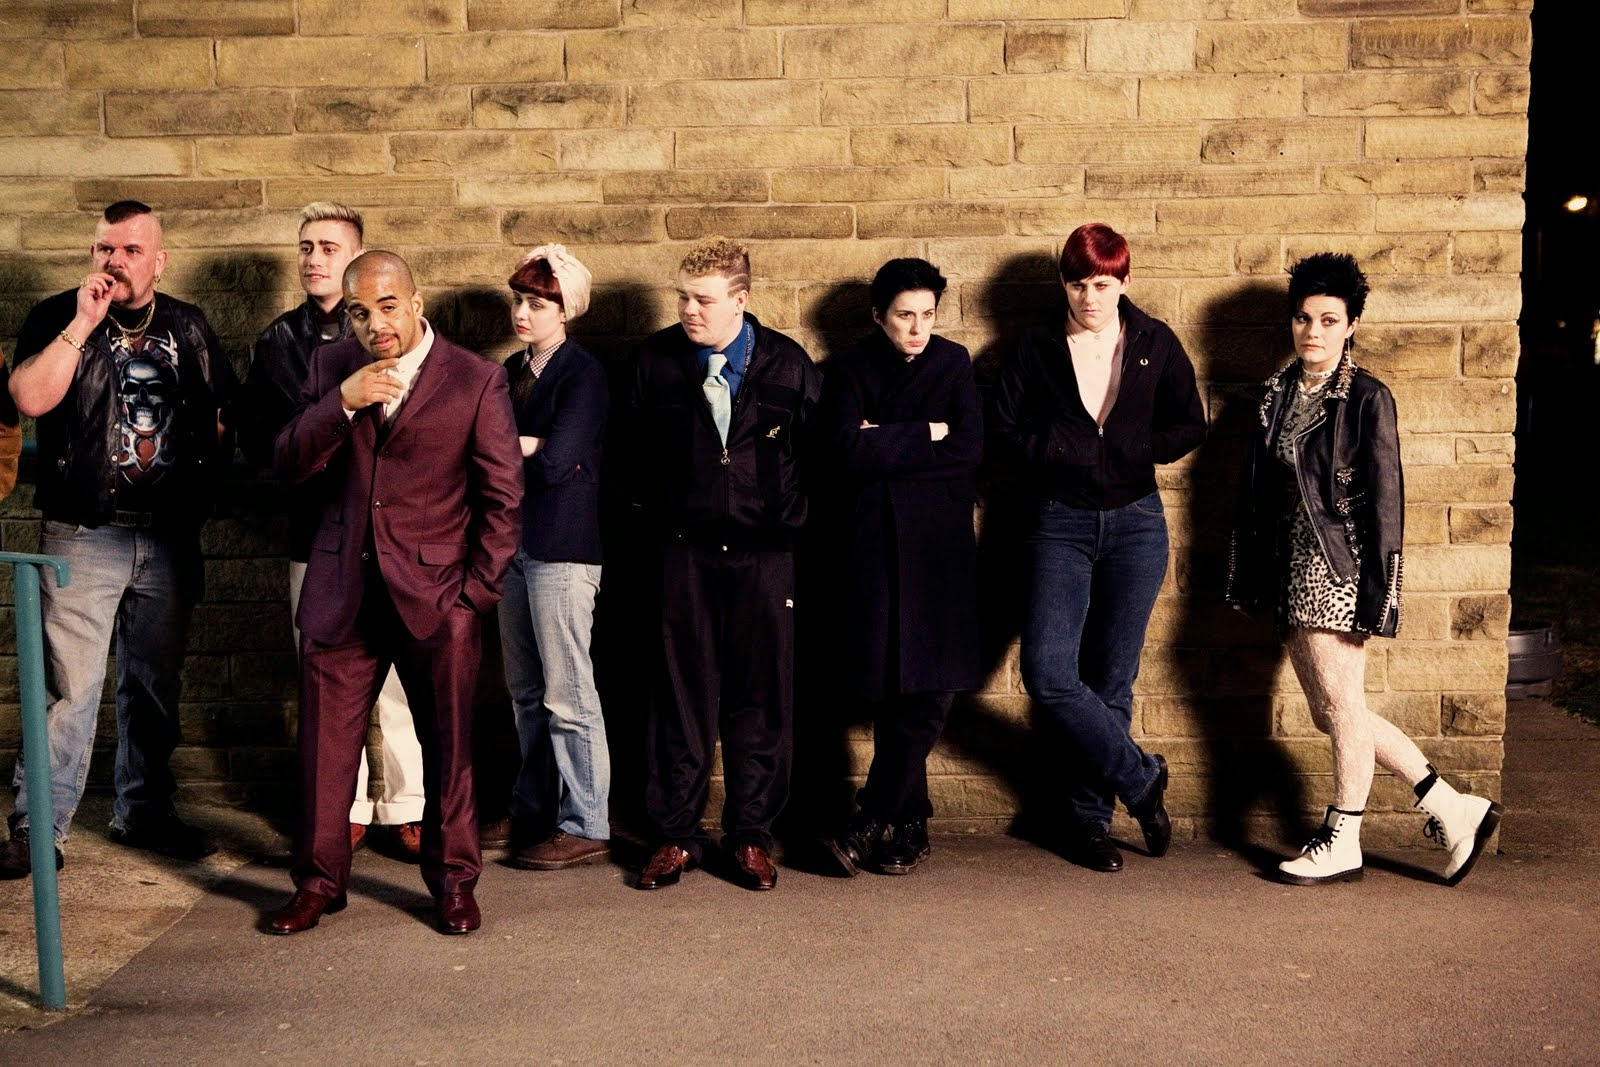 The Custard Tv This Is England 90 To Air On Channel 4 In 2015